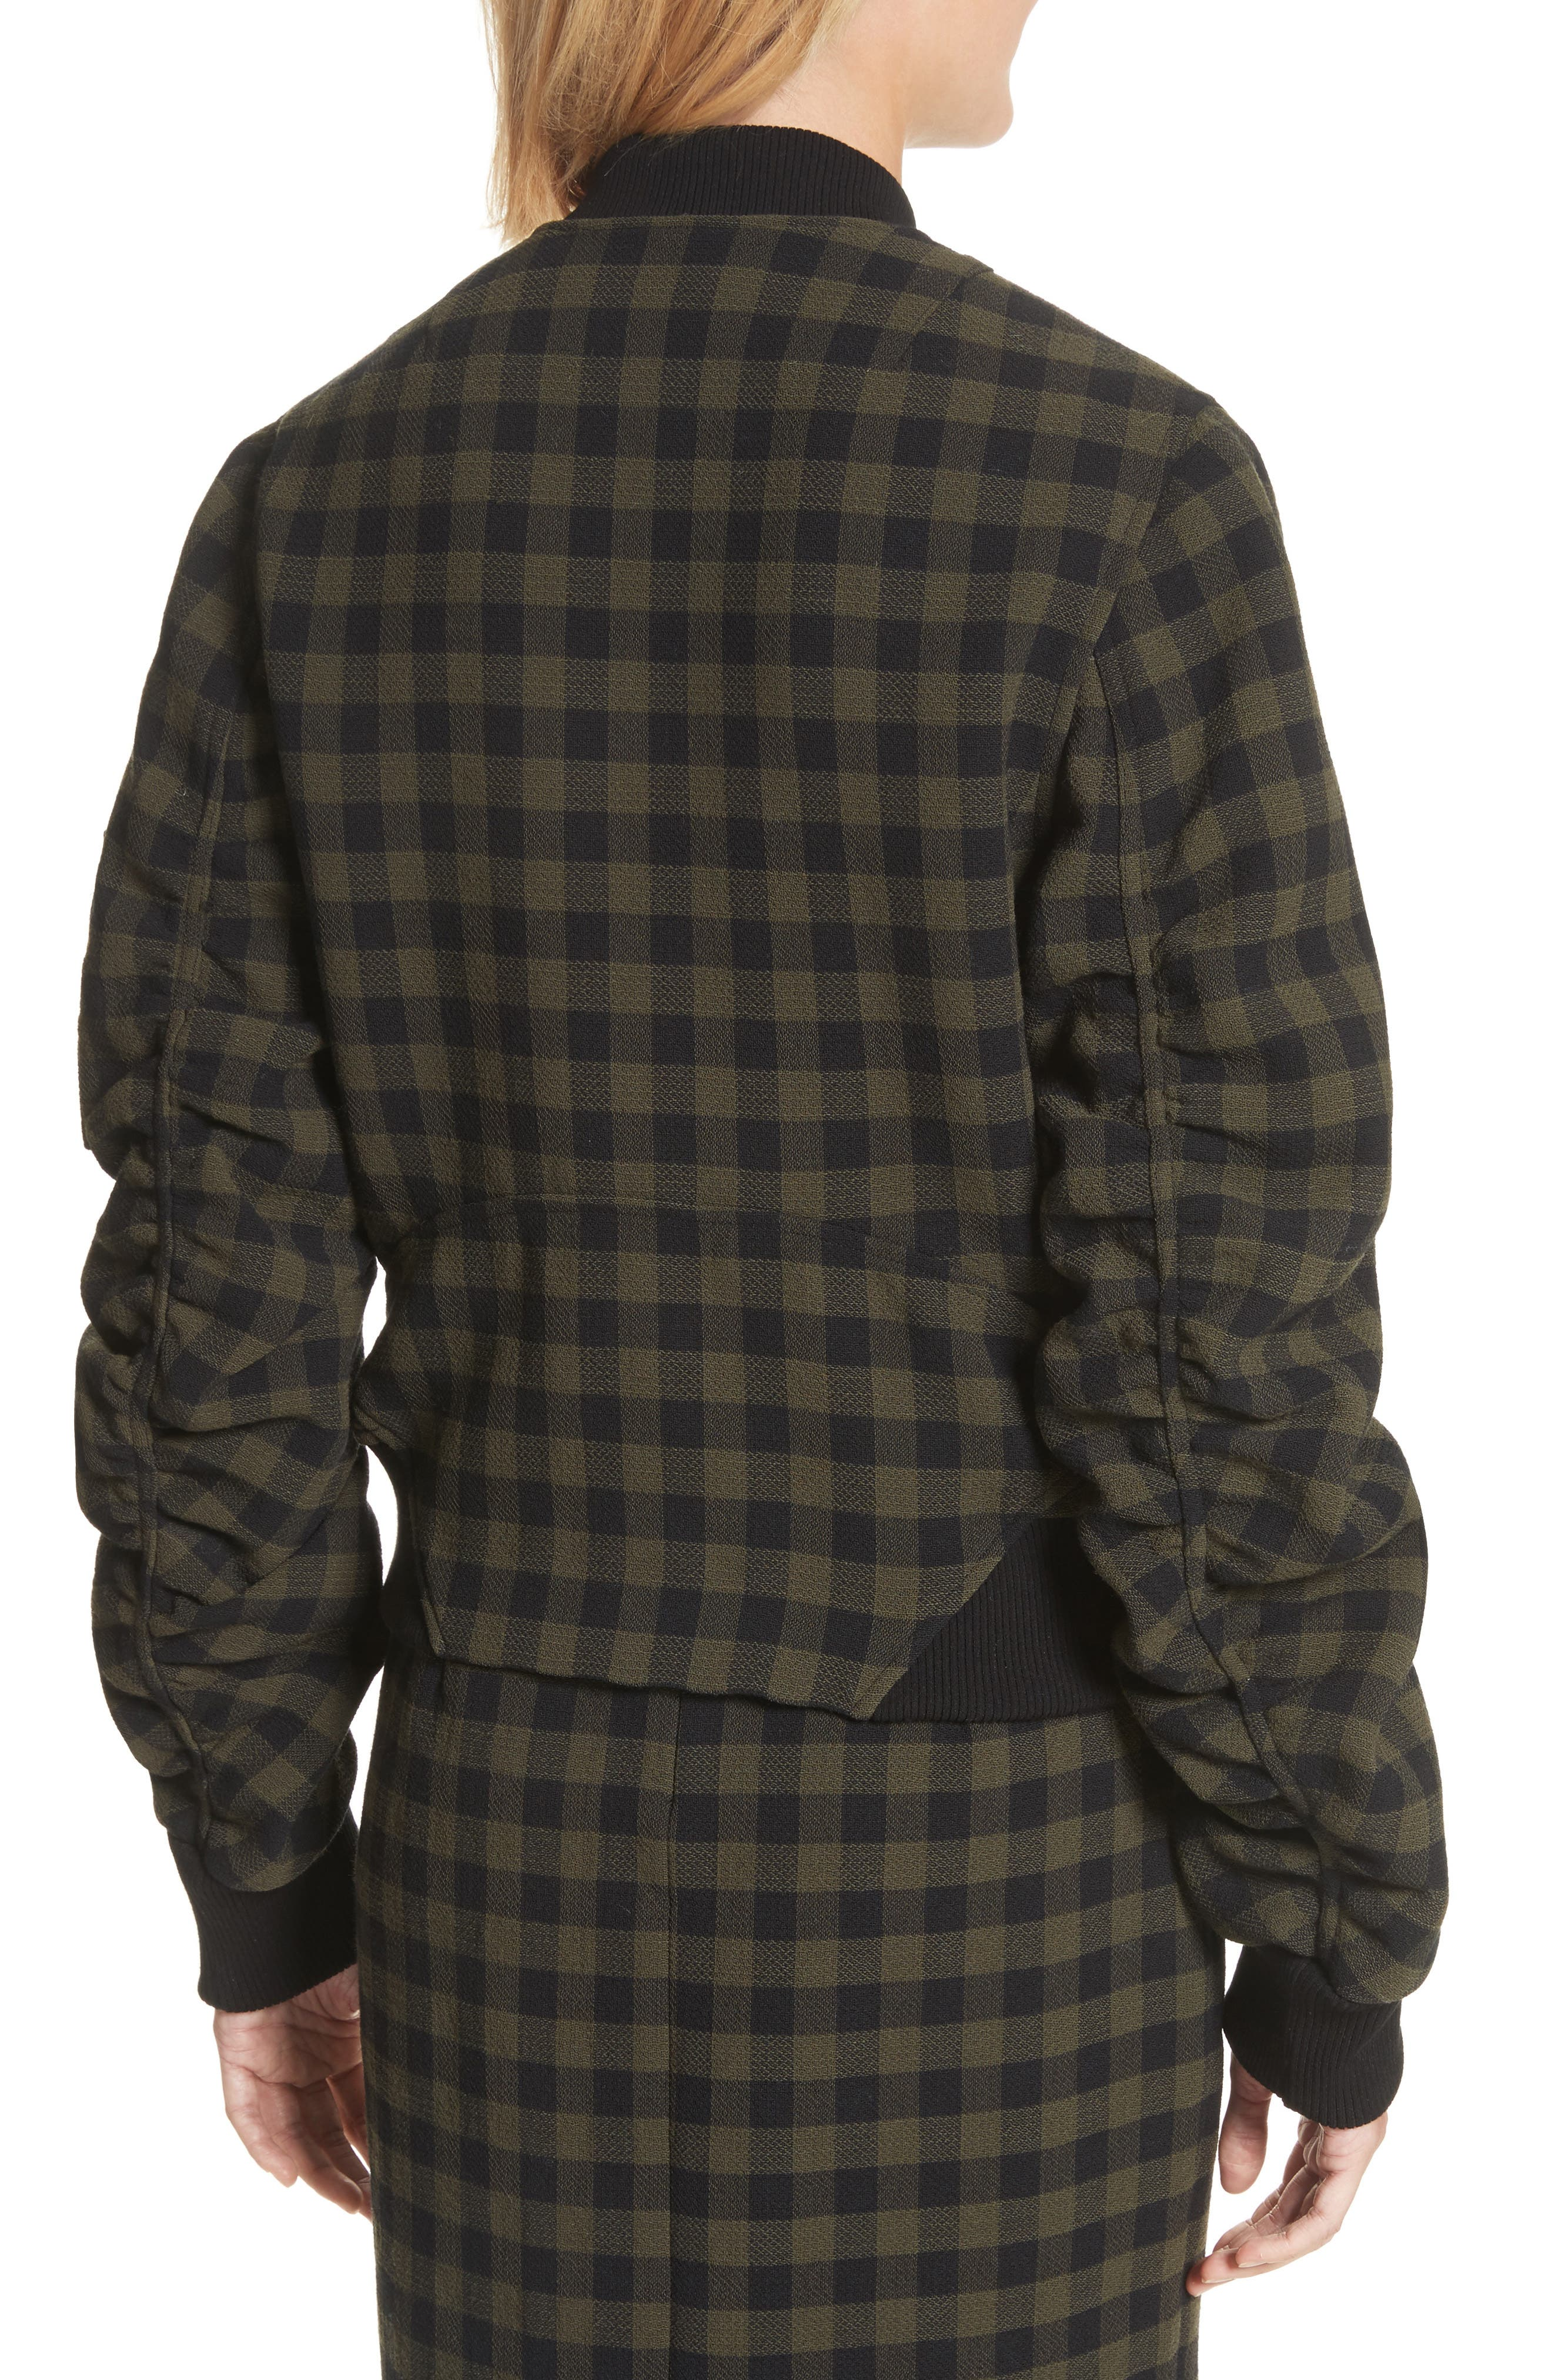 A..L.C. Andrew Wool Bomber Jacket,                             Alternate thumbnail 2, color,                             340